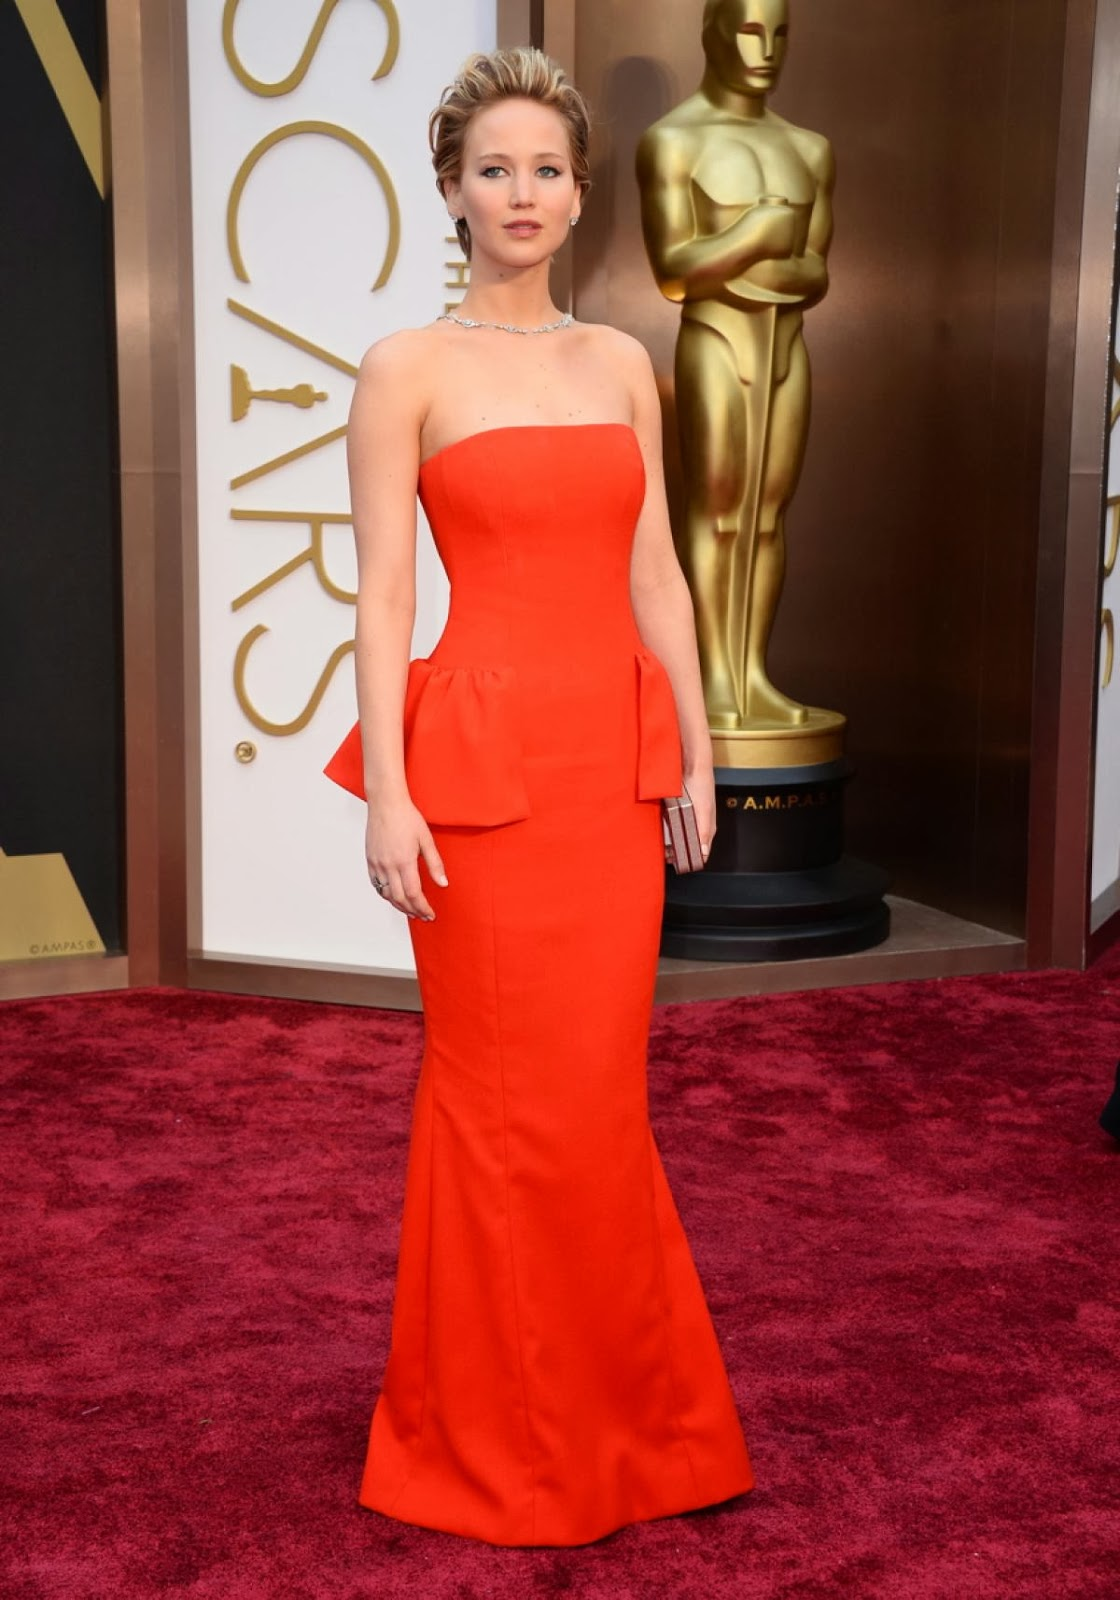 Jennifer Lawrence in Dior, Oscars 2014, Academy Awards